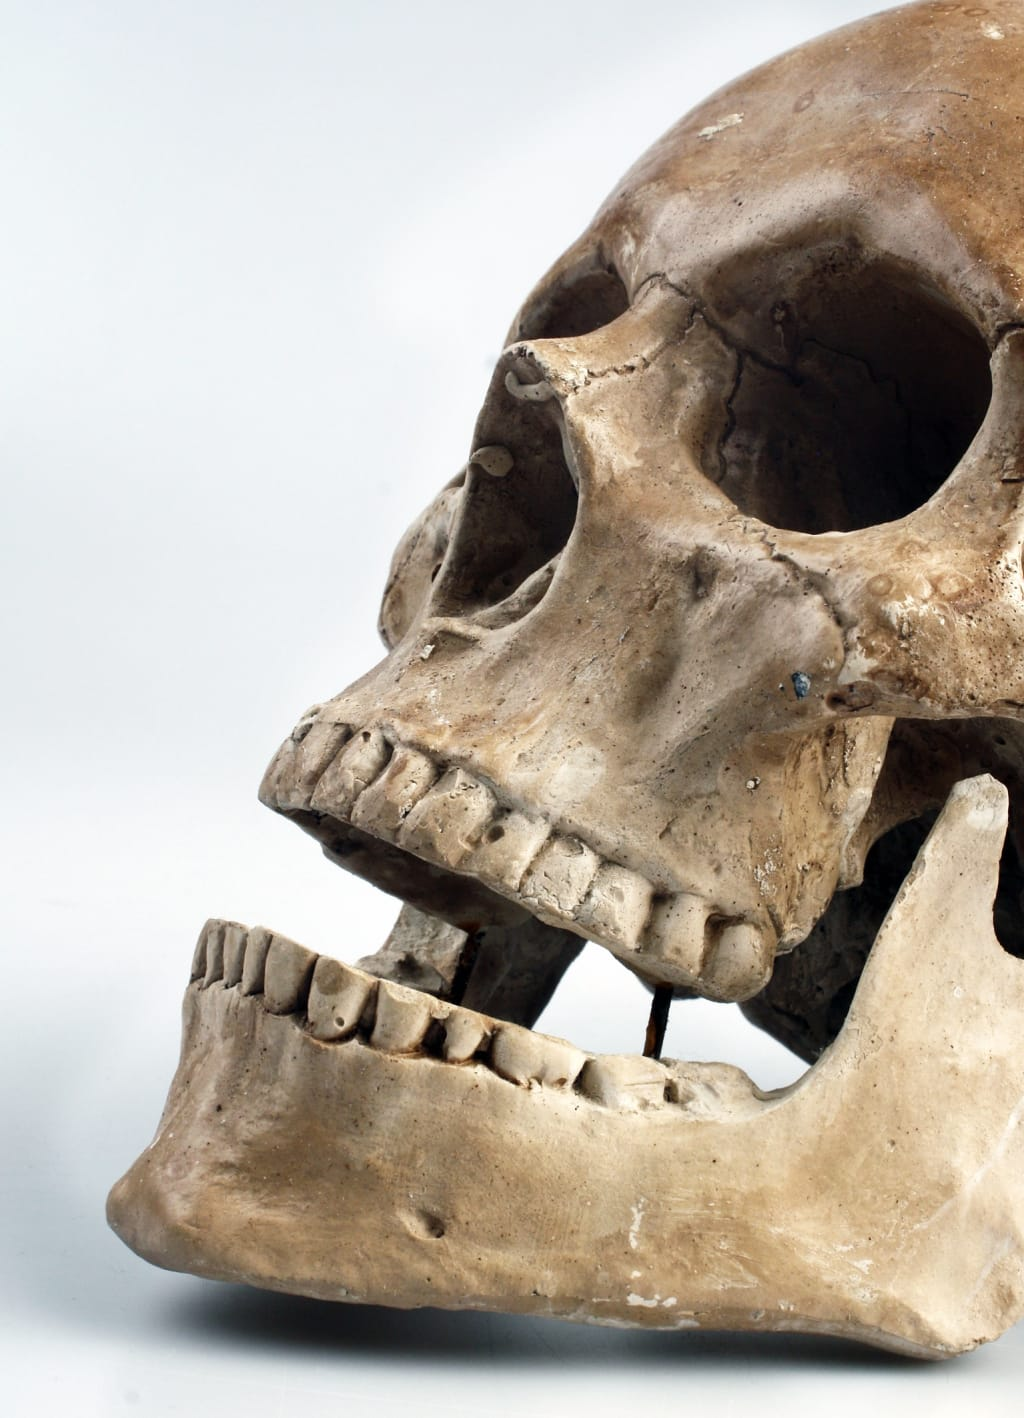 What Is a Forensic Anthropologist?